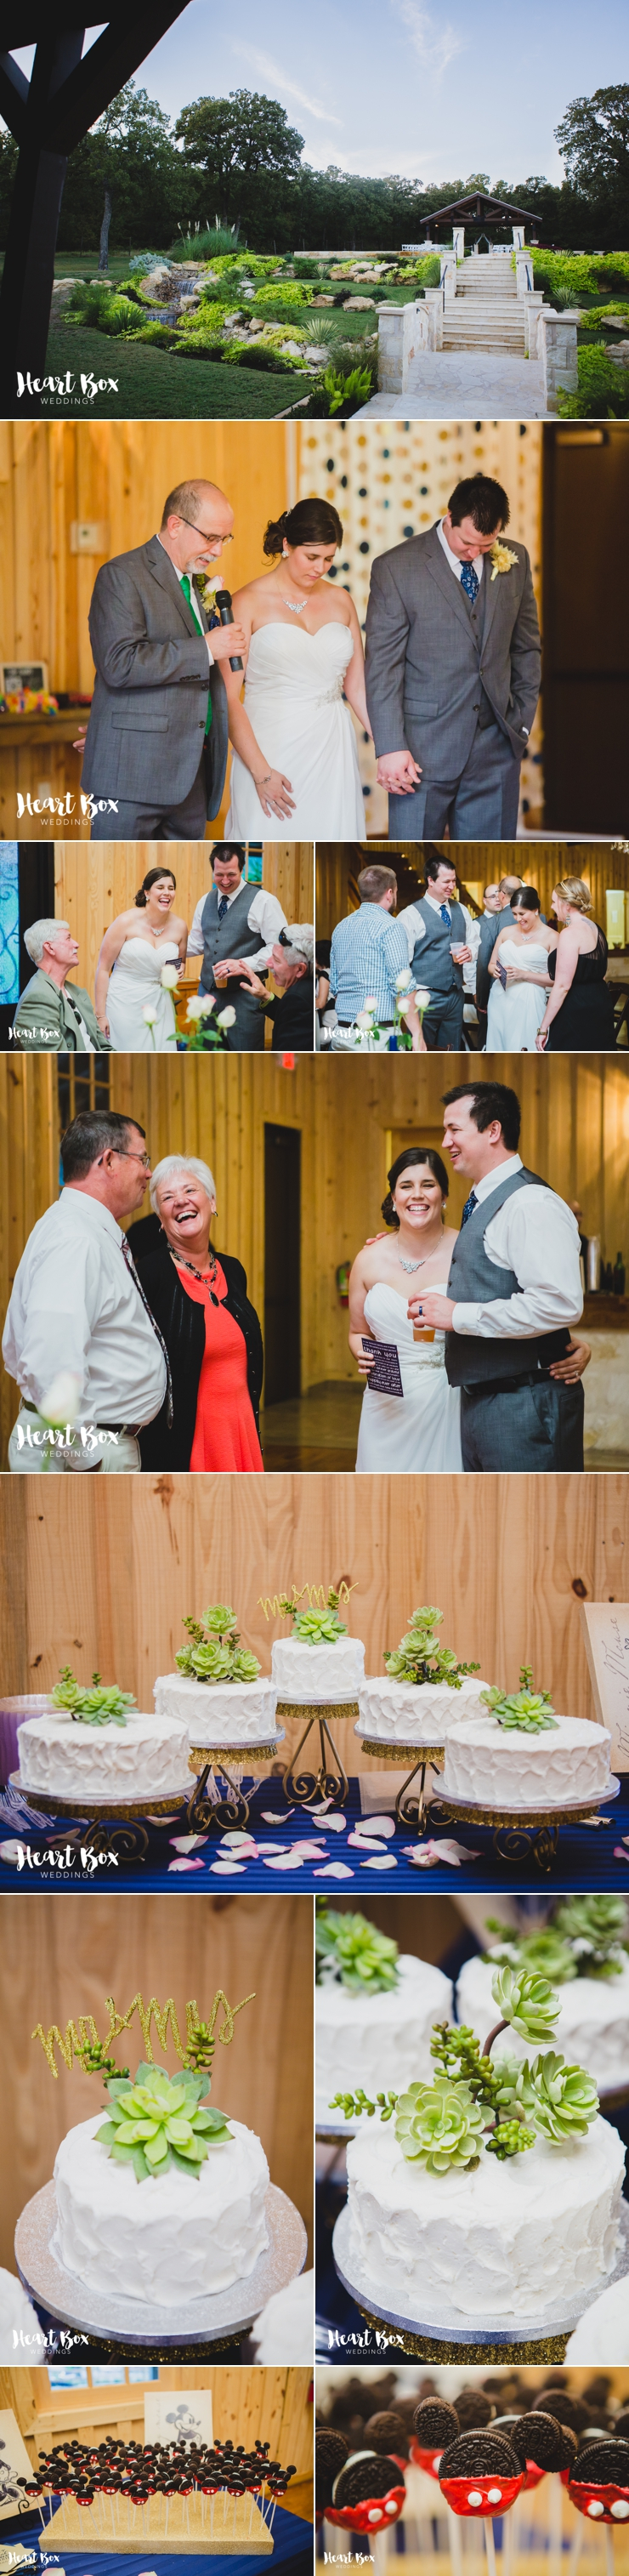 Waggoner Wedding Collages 13.jpg